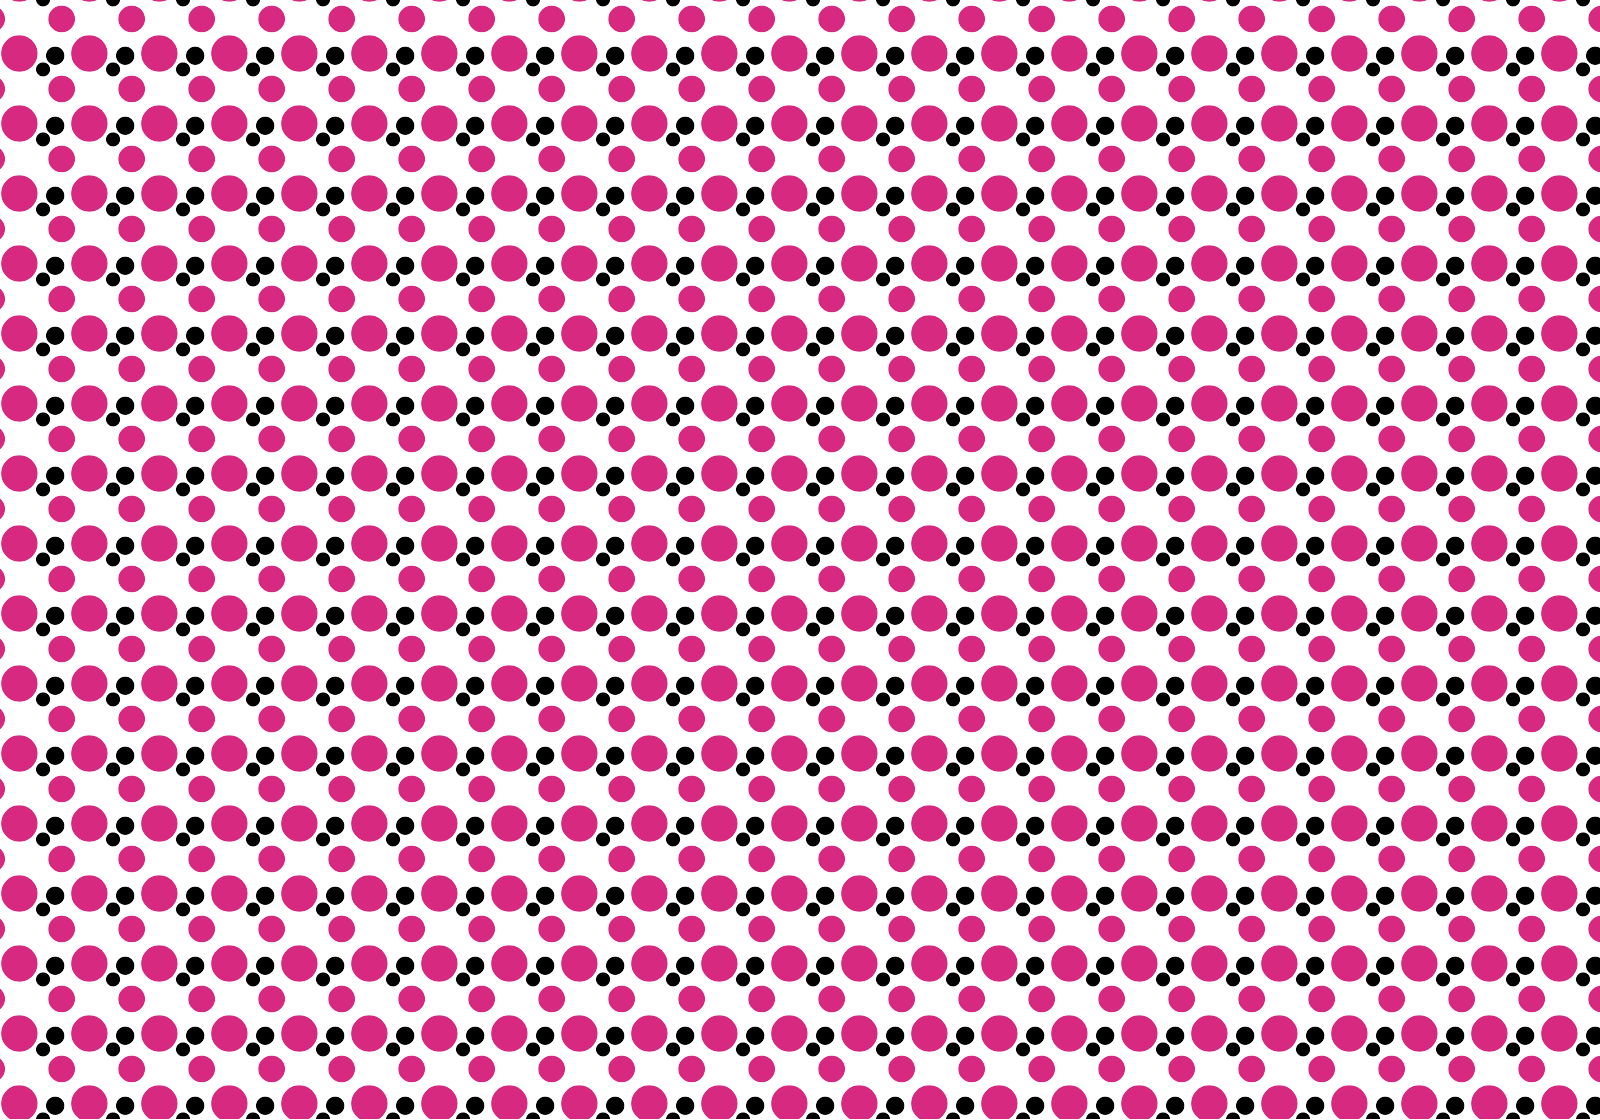 Minnie Mouse Tumblr Background   www.galleryhip.com - The Hippest Pics